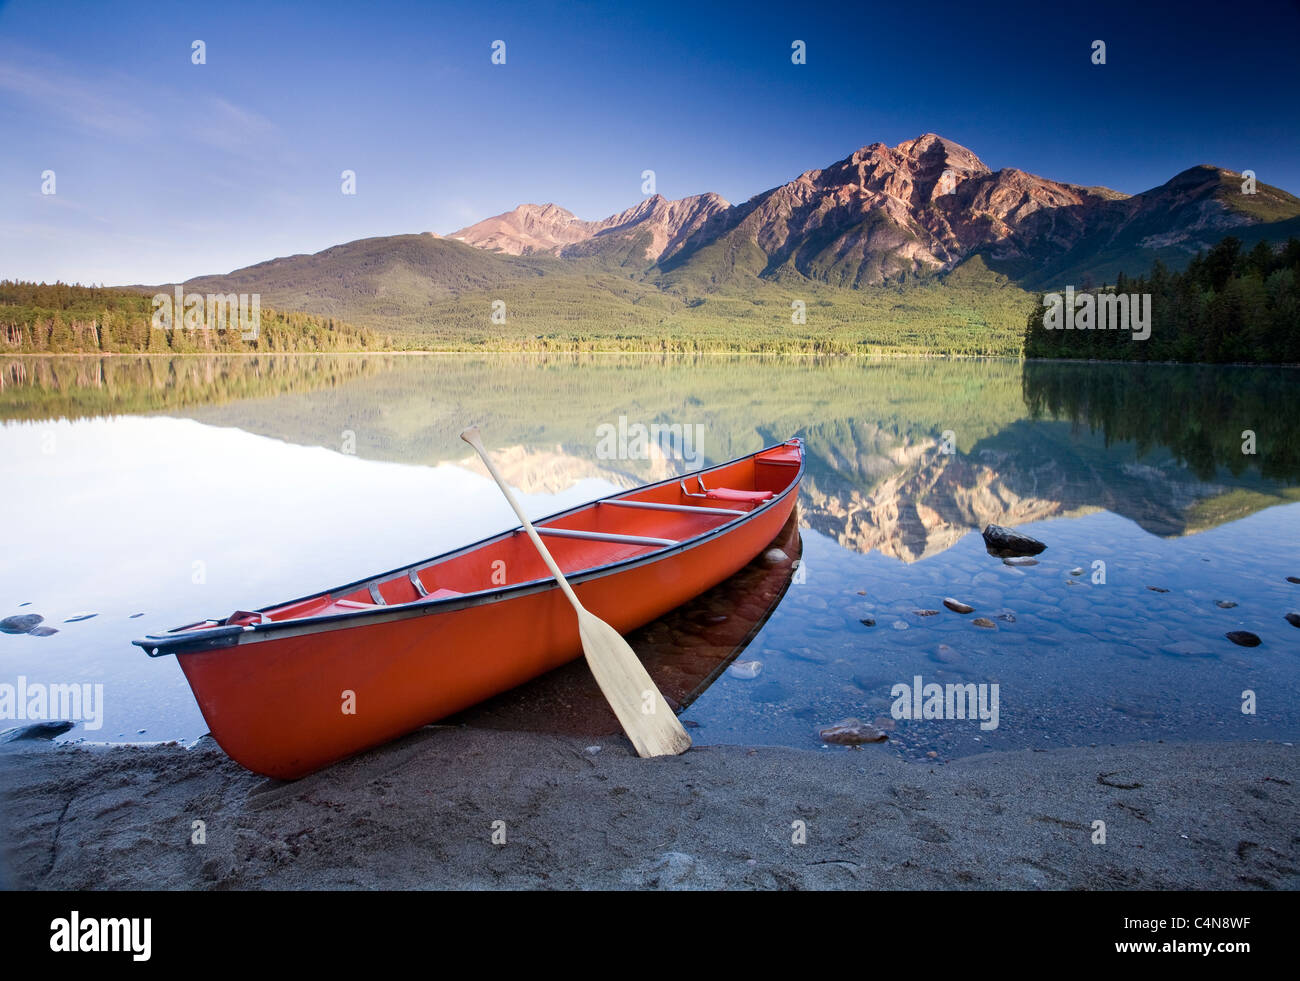 Red canoe at dawn on Pyramid Lake, Jasper National Park, Alberta, Canada. Stock Foto